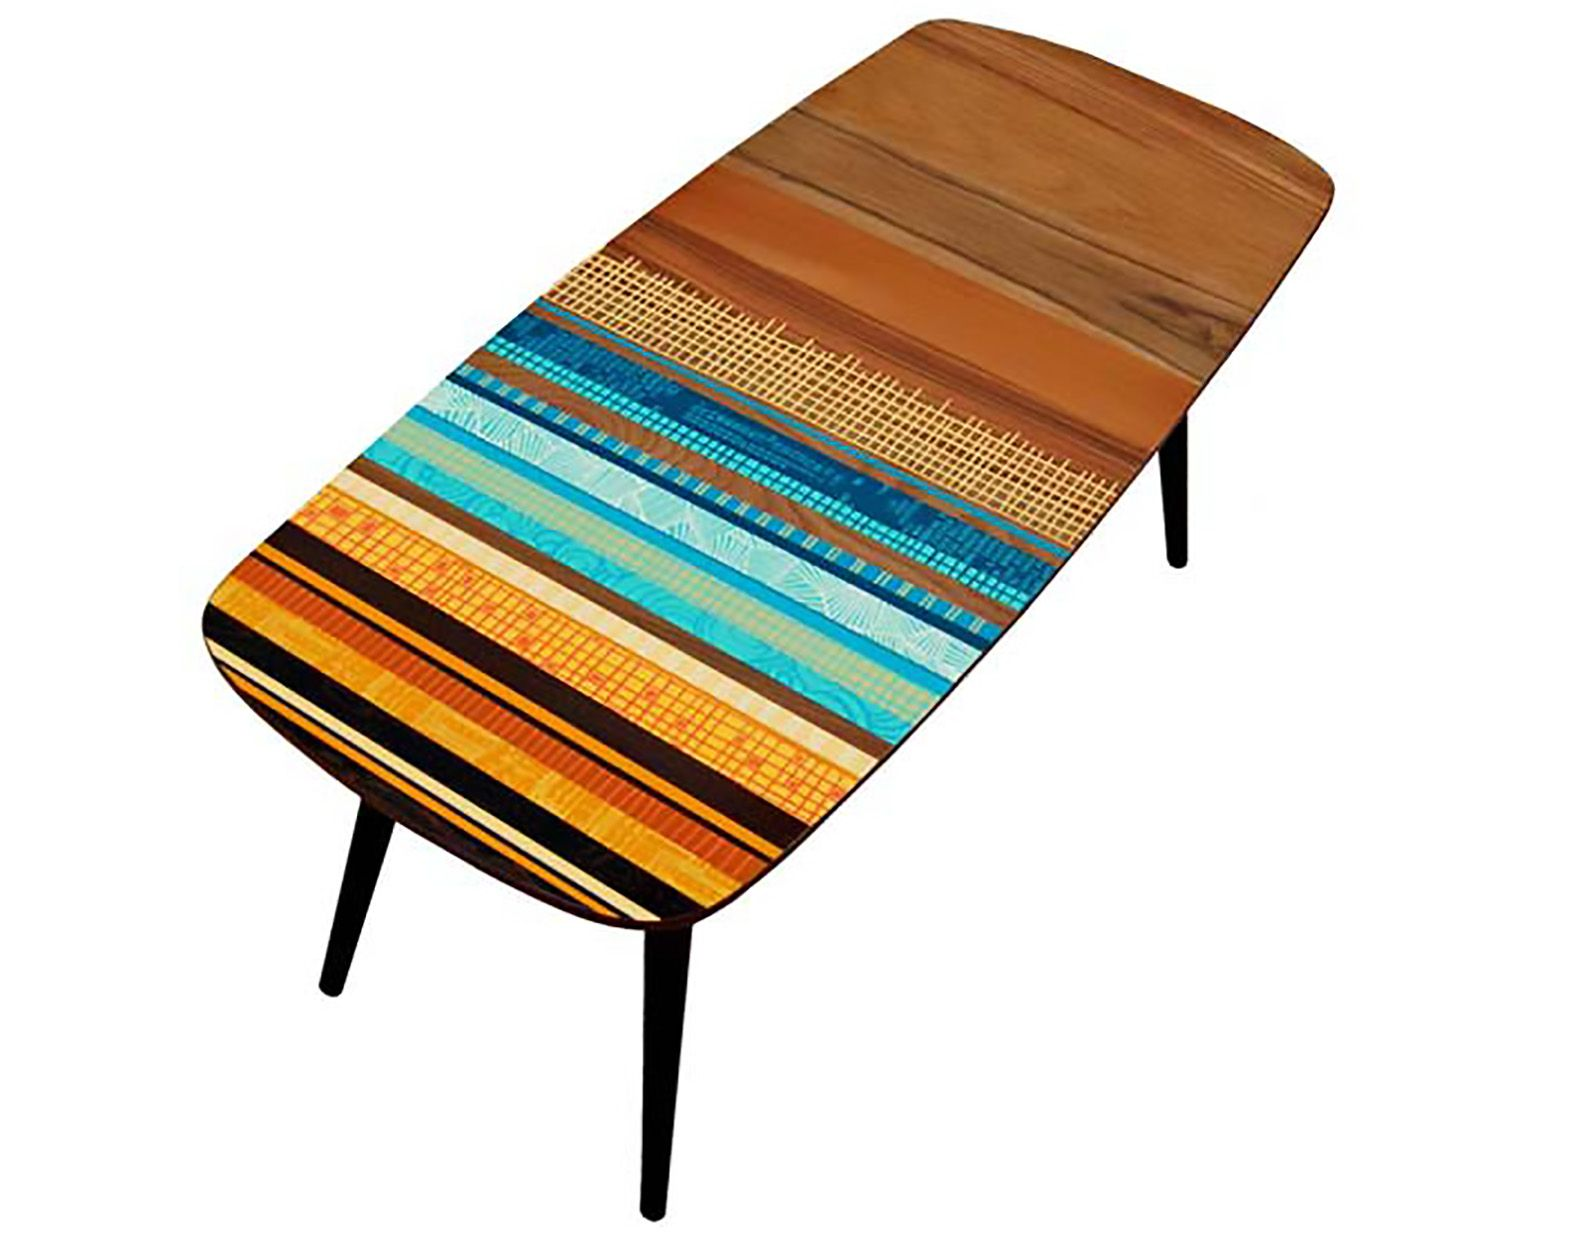 In Addition To Her Margate Collection, Murphy Also Offers Brilliant Print,  A Furniture Series Amazing Ideas